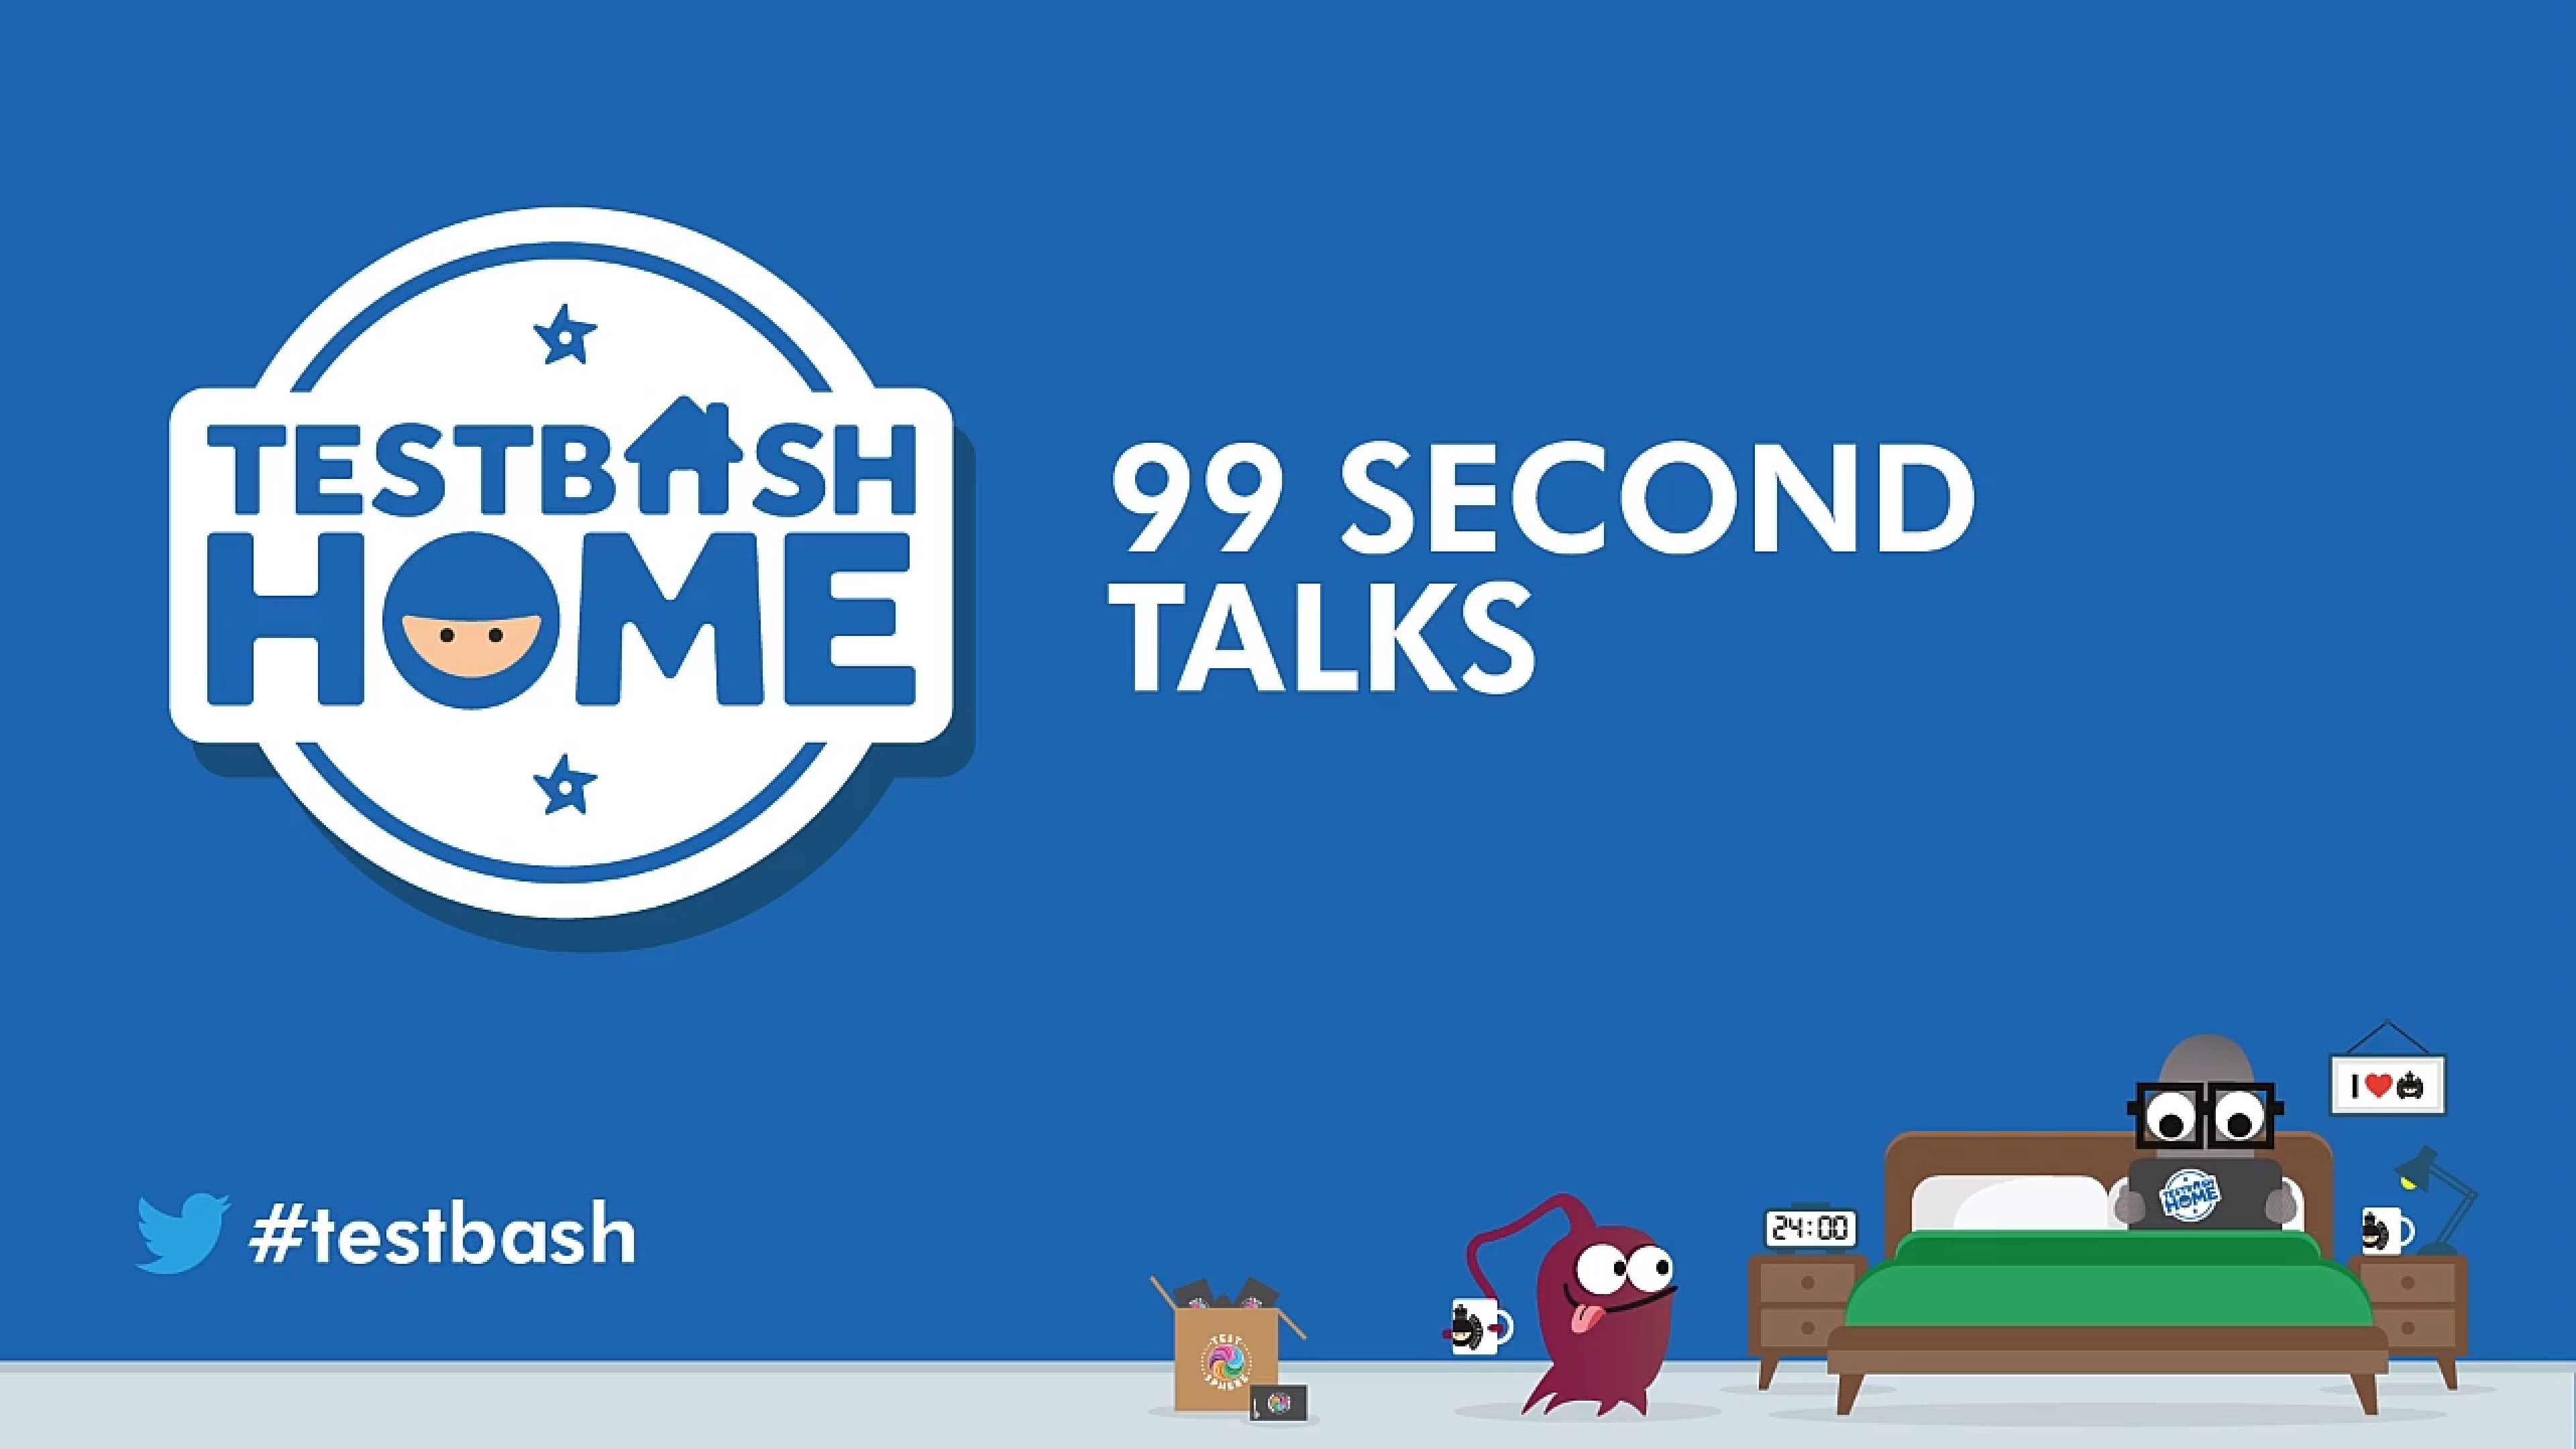 TestBash Home 2021 - 99-Second Talks